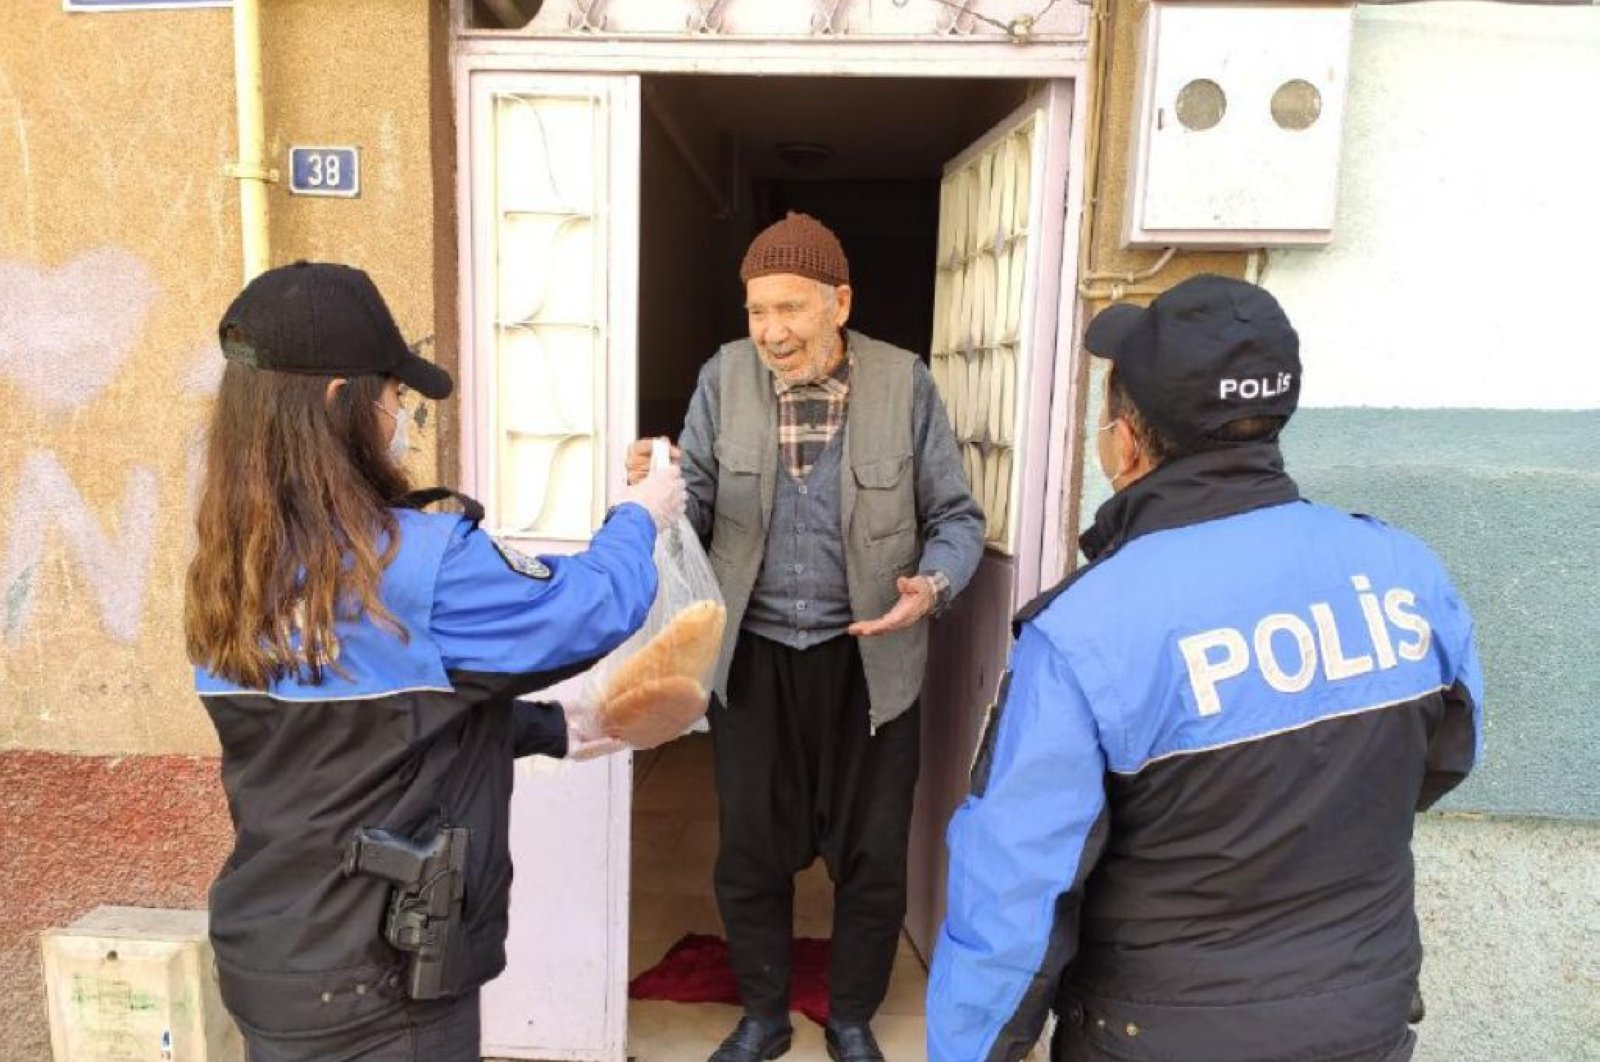 Police officers deliver bread to an elderly man in Gaziantep, Turkey, Wednesday, March 25, 2020. (AA Photo)